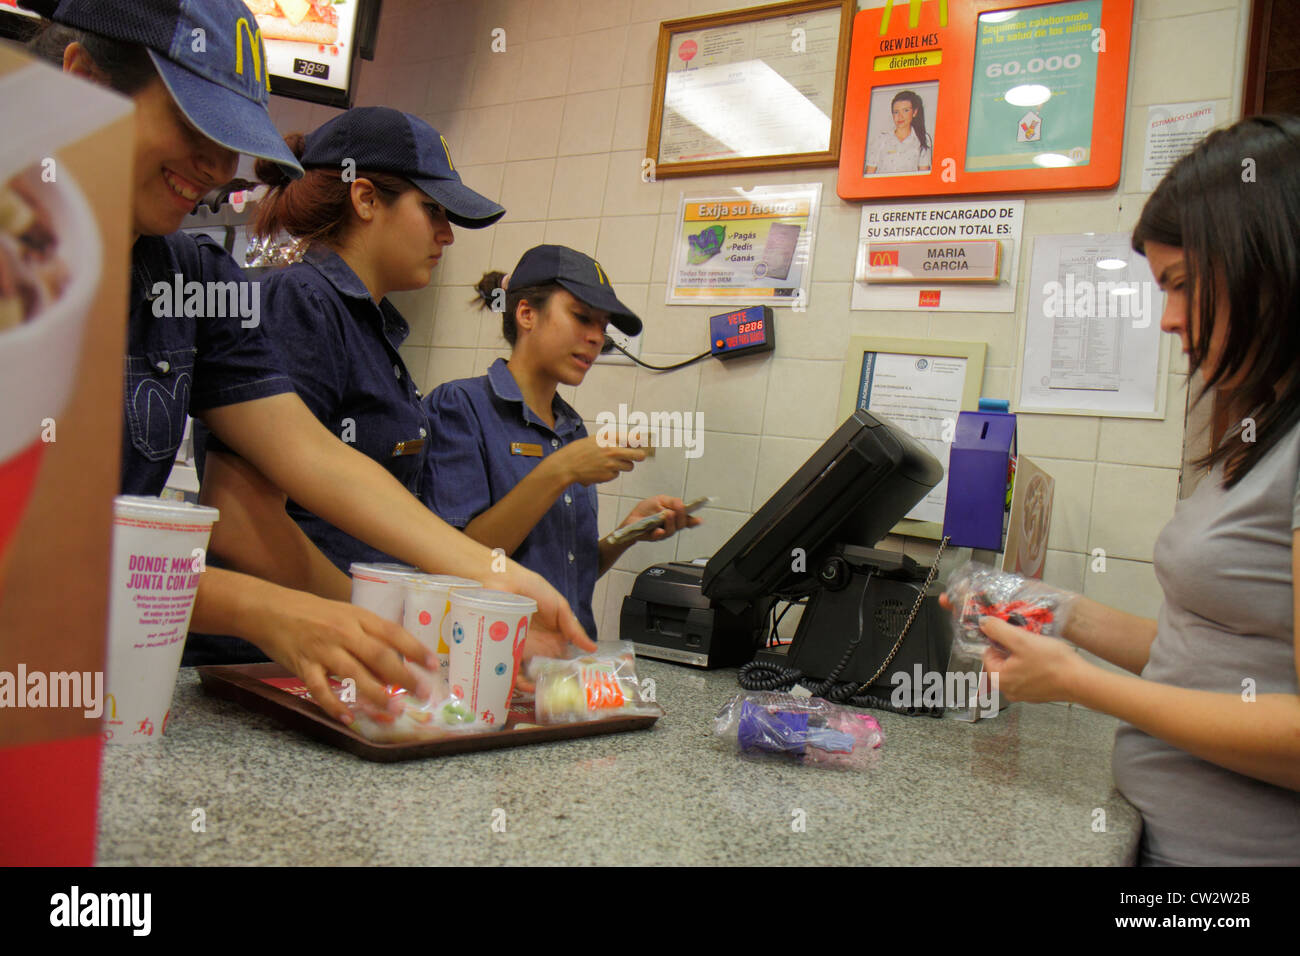 Mendoza Argentina Avenida San Martin McDonald's fast food restaurant business global company counter Hispanic - Stock Image